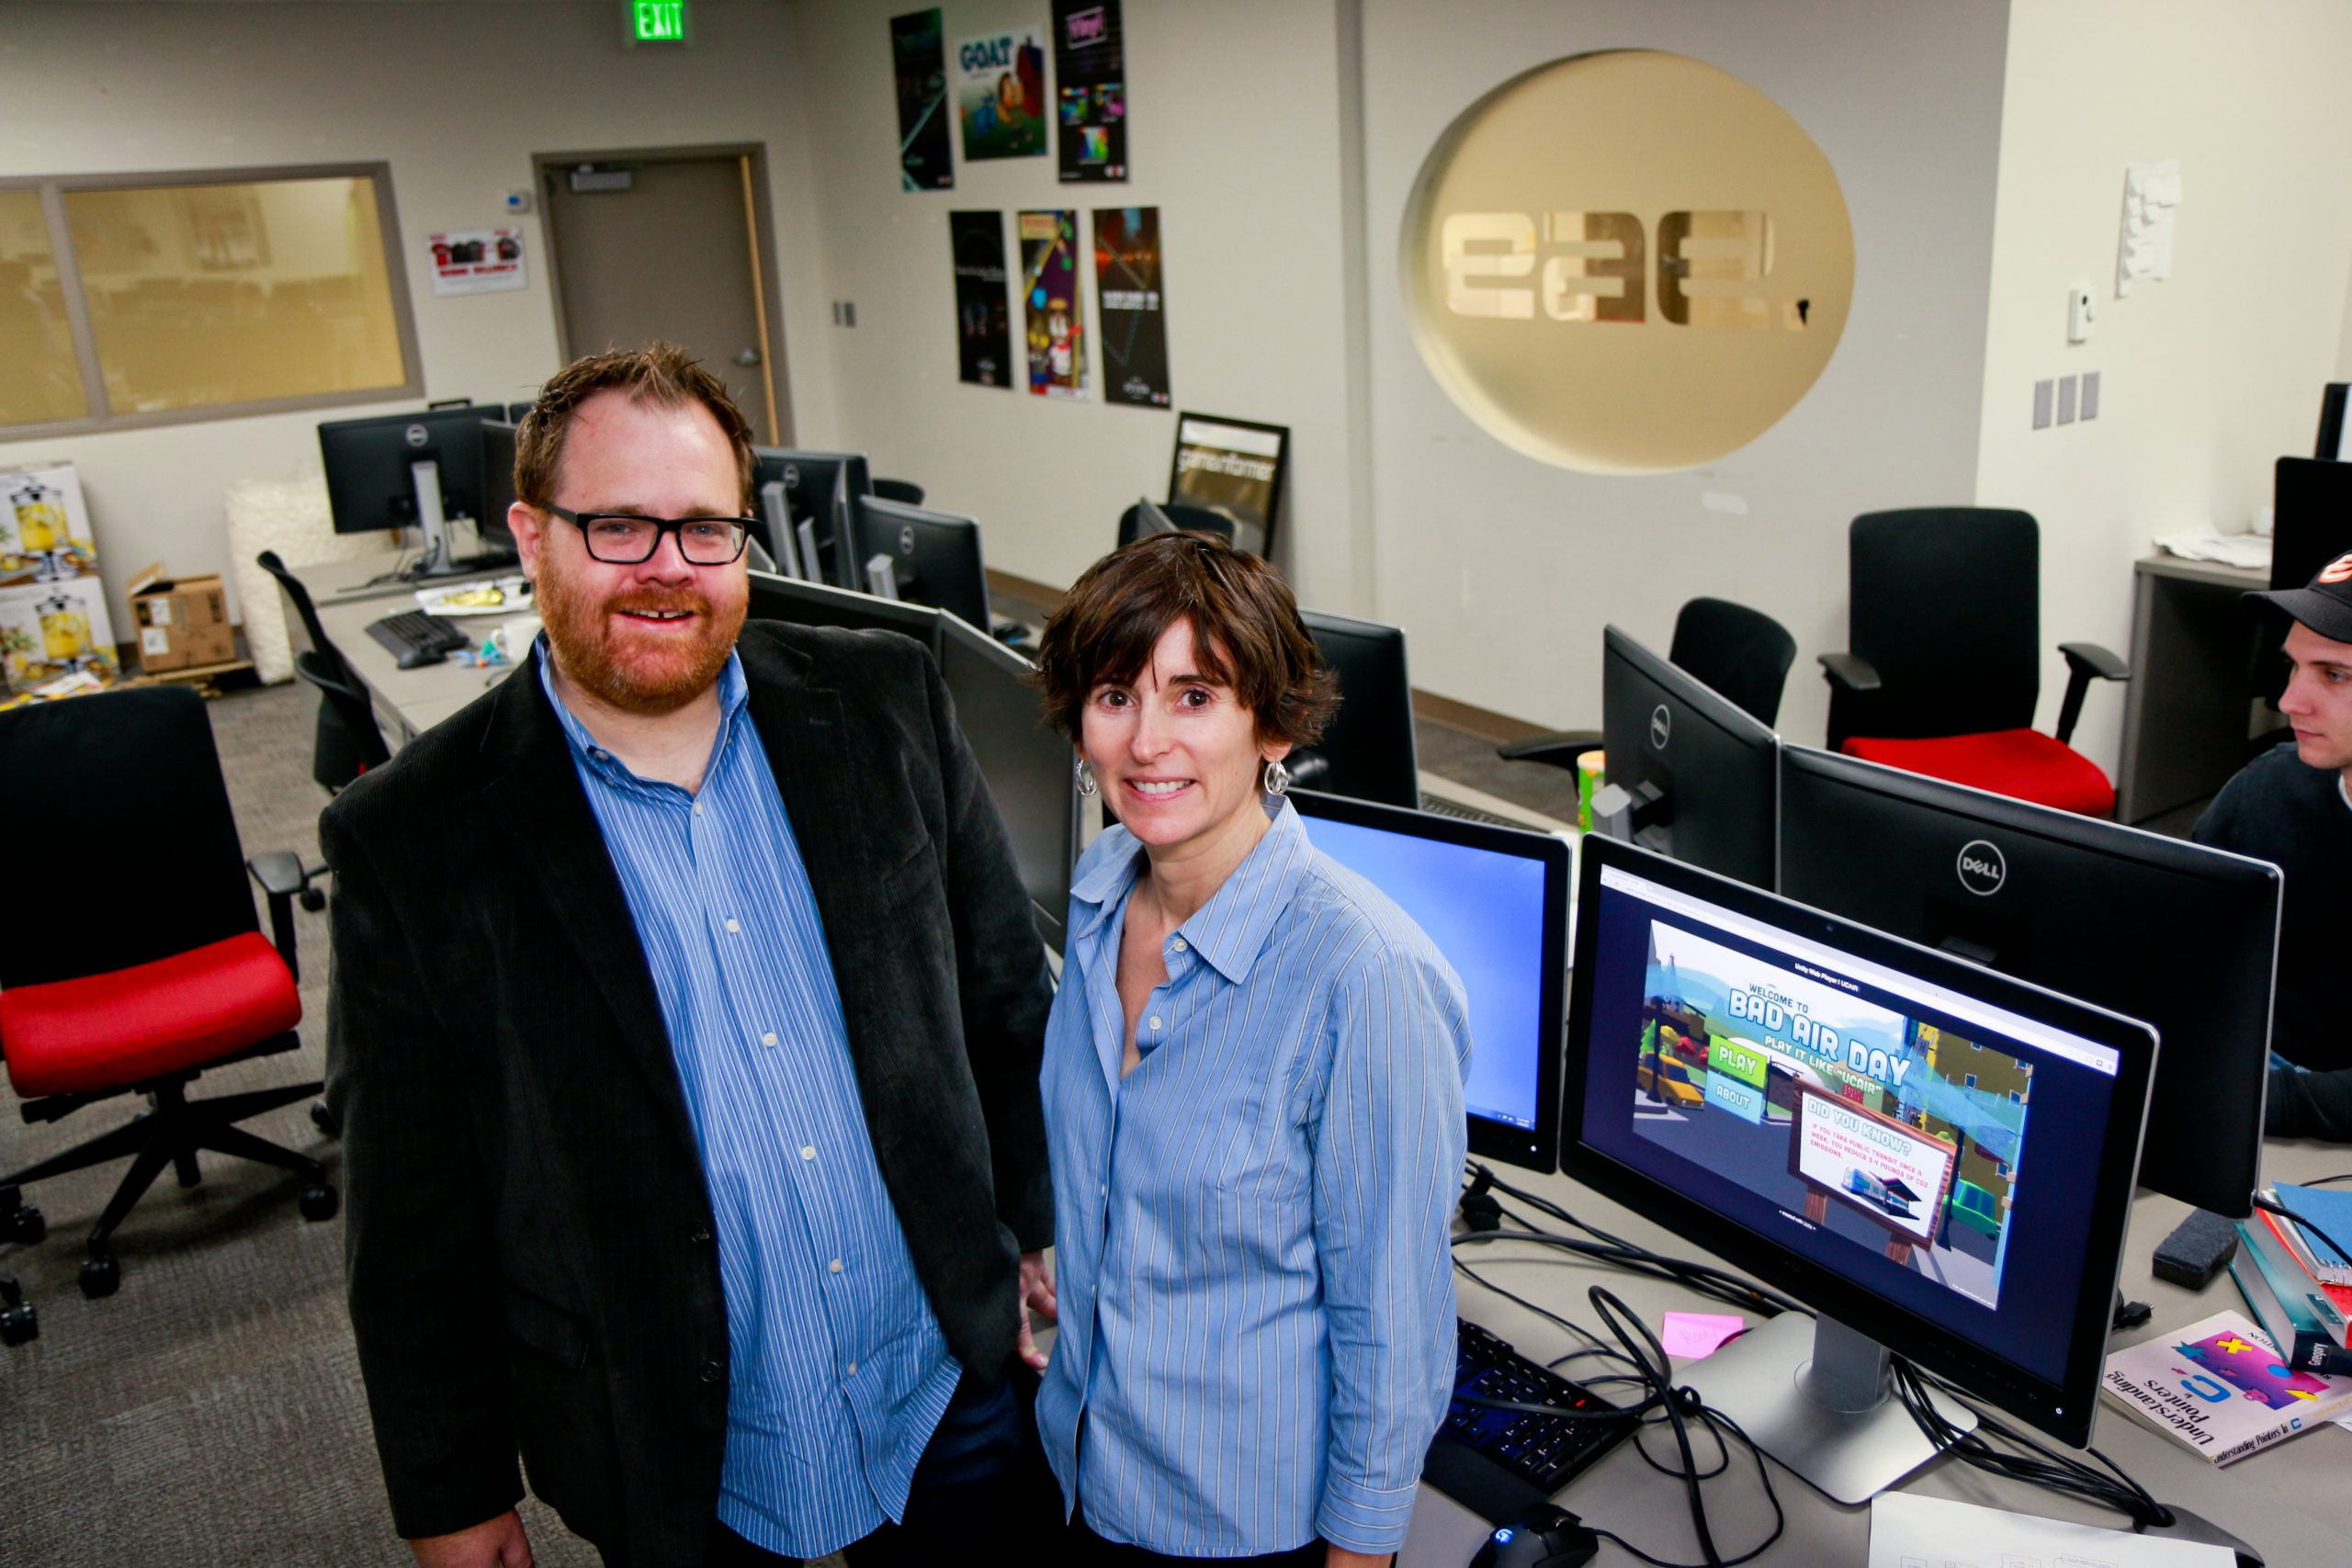 """Roger Altizer, EAE Director of Therapeutic Games and Apps (The Gapp) Lab at the University of Utah, left, and Kerry Kelly, a U chemical engineering research associate, have produced """"Bad Air Day: Play It Like 'UCAIR,'"""" a new video game that teaches high school students about what impacts air quality. Kelly, an expert in air quality, came up with the idea for the game and turned to Altizer and the U's Entertainment Arts and Engineering video game design program to produce it."""